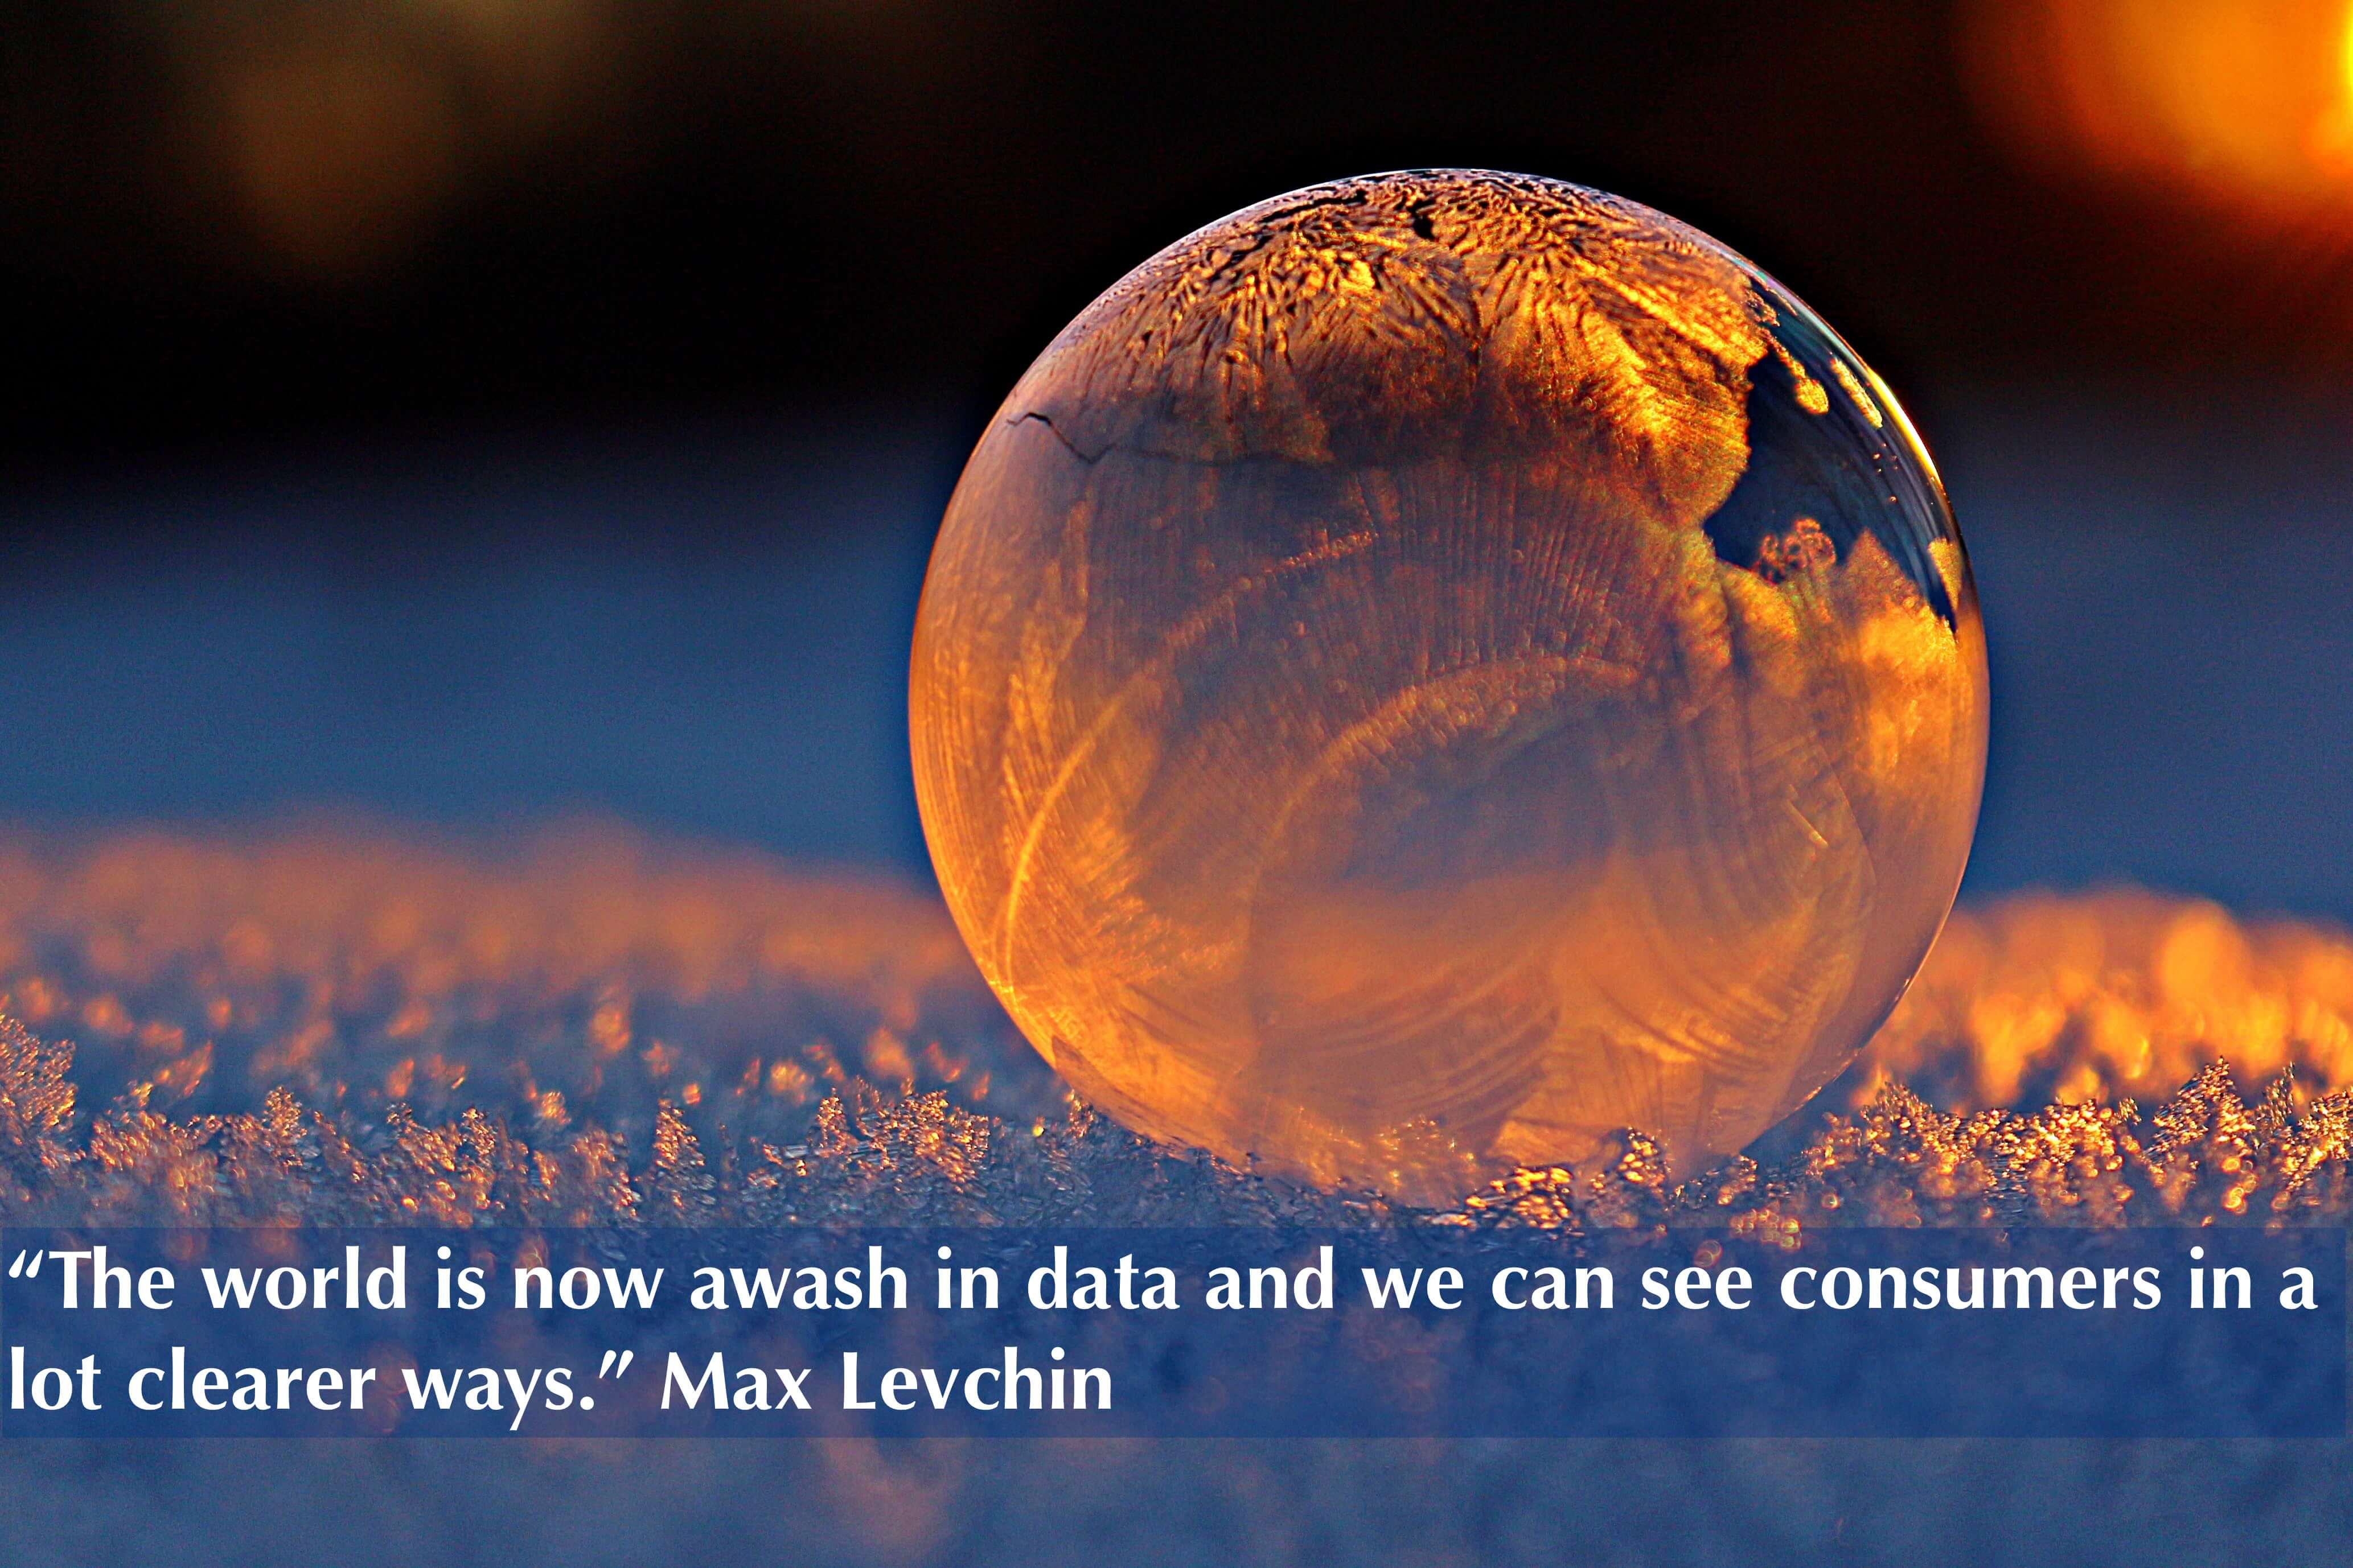 """The world is now awash in data and we can see consumers in a lot clearer ways."" Max Levchin"